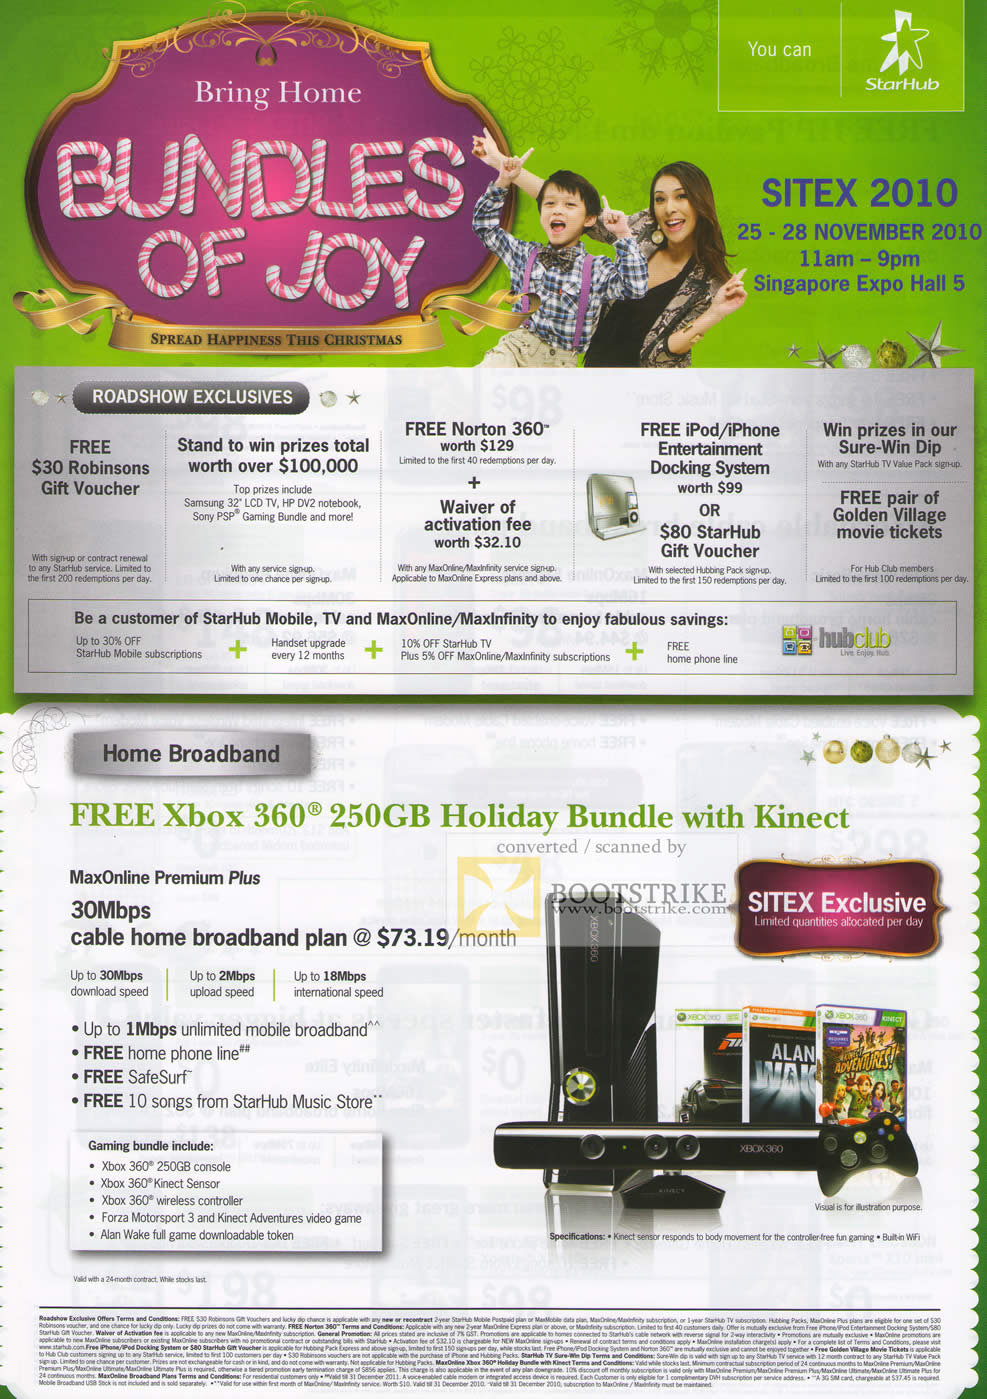 Sitex 2010 price list image brochure of Starhub Roadshow Exclusives Xbox 360 Kinect Maxonline Premium Plus